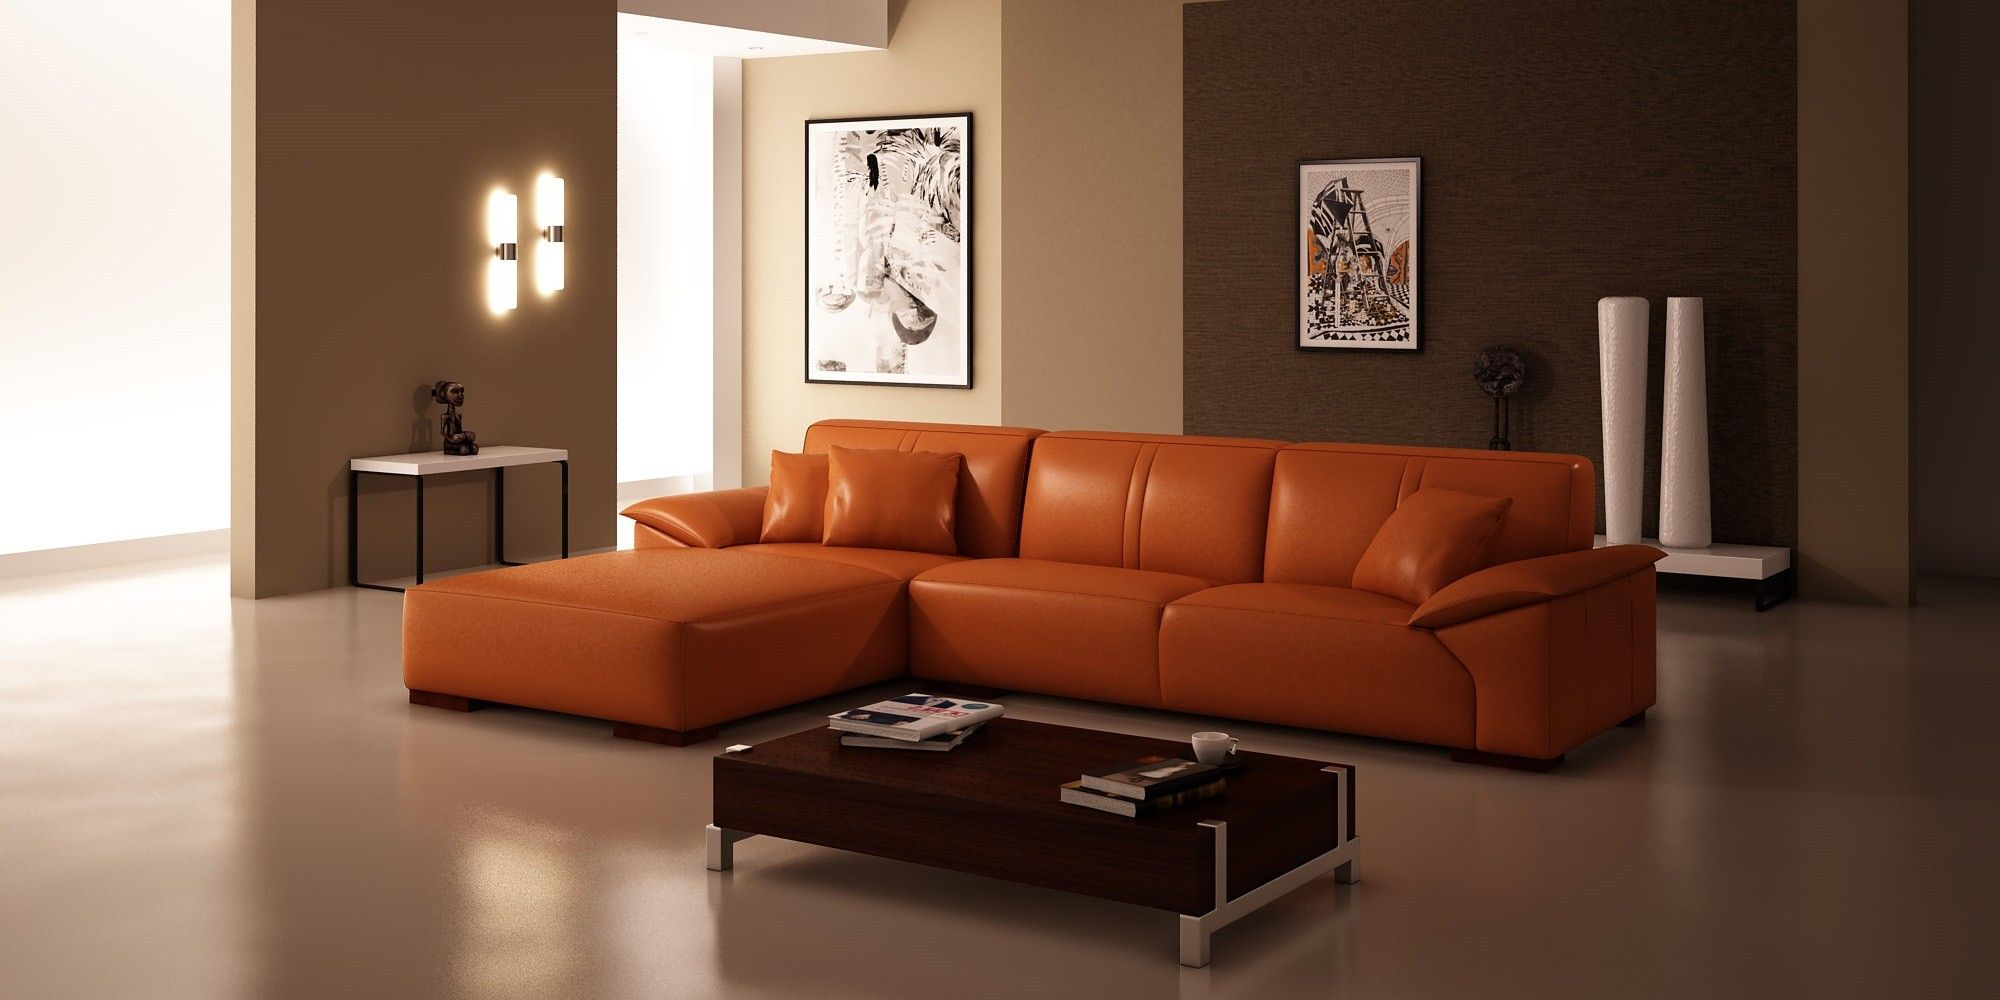 Burnt Orange And Brown Living Room Adorable Glorious L Shaped Sectional Orange Sofa With Left Hand Chaise Design Ideas